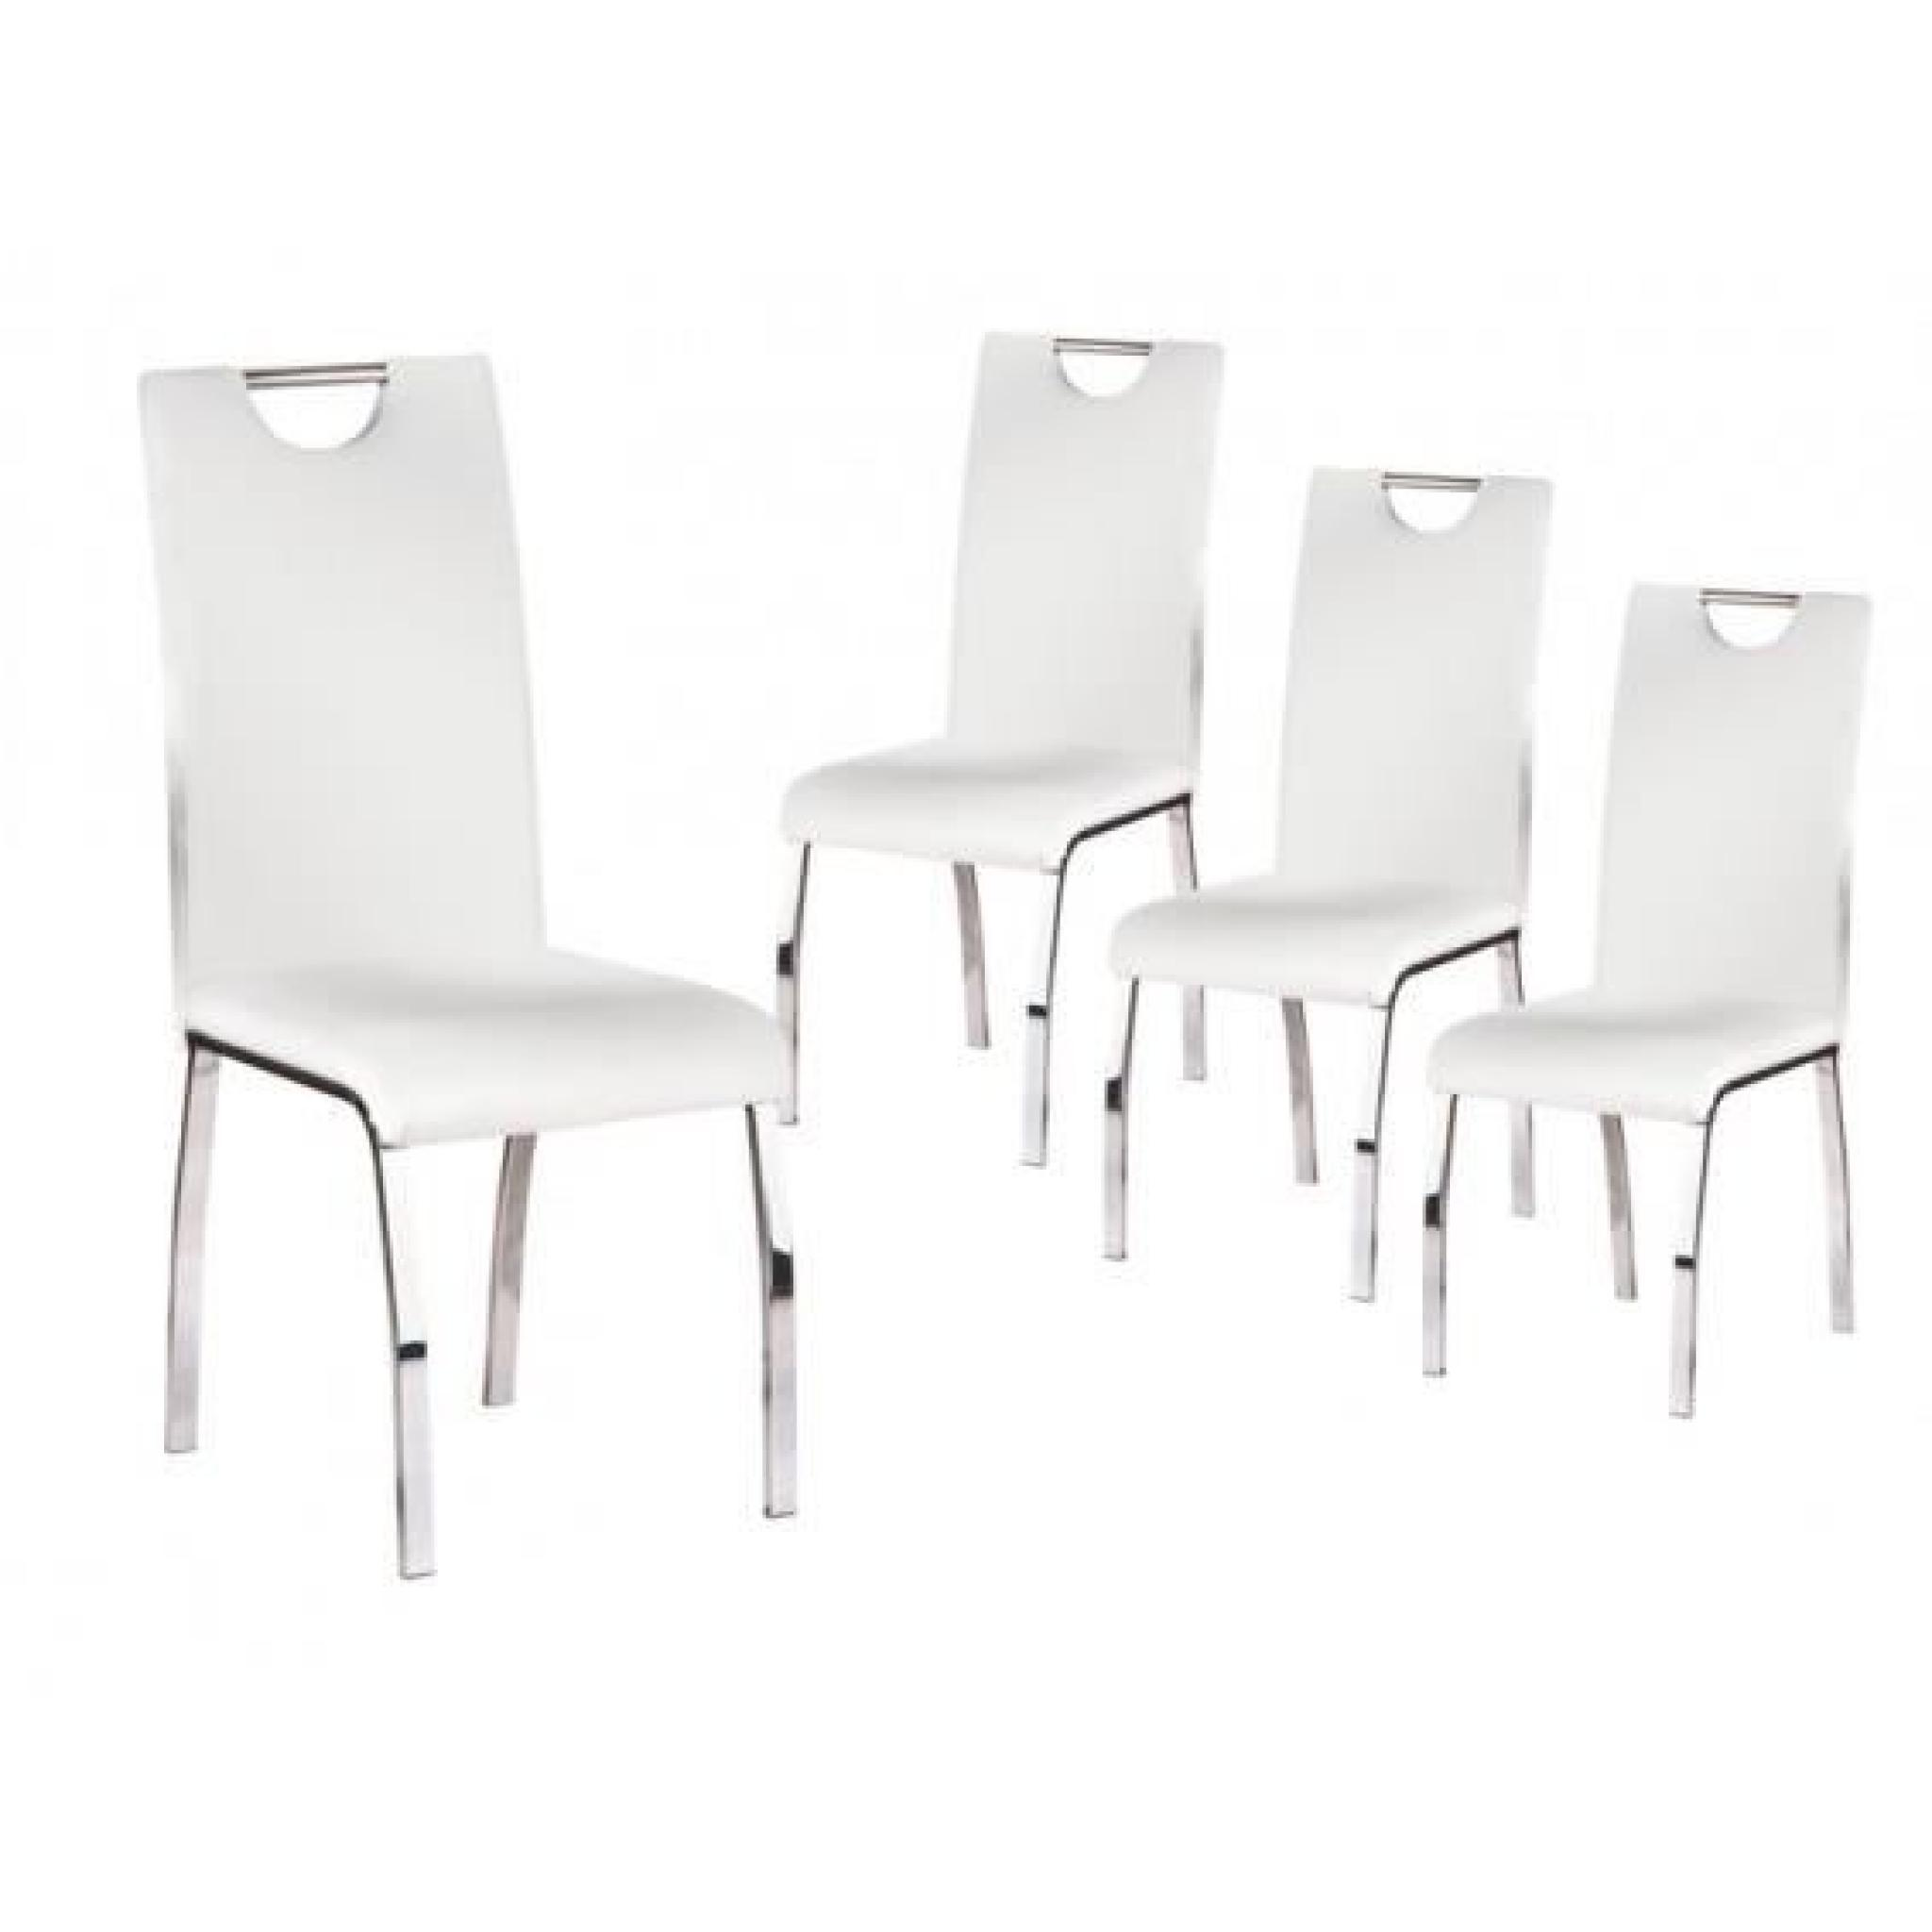 Chaise Blanche Pas Cher Cooper Lot 4 Chaises Blanches